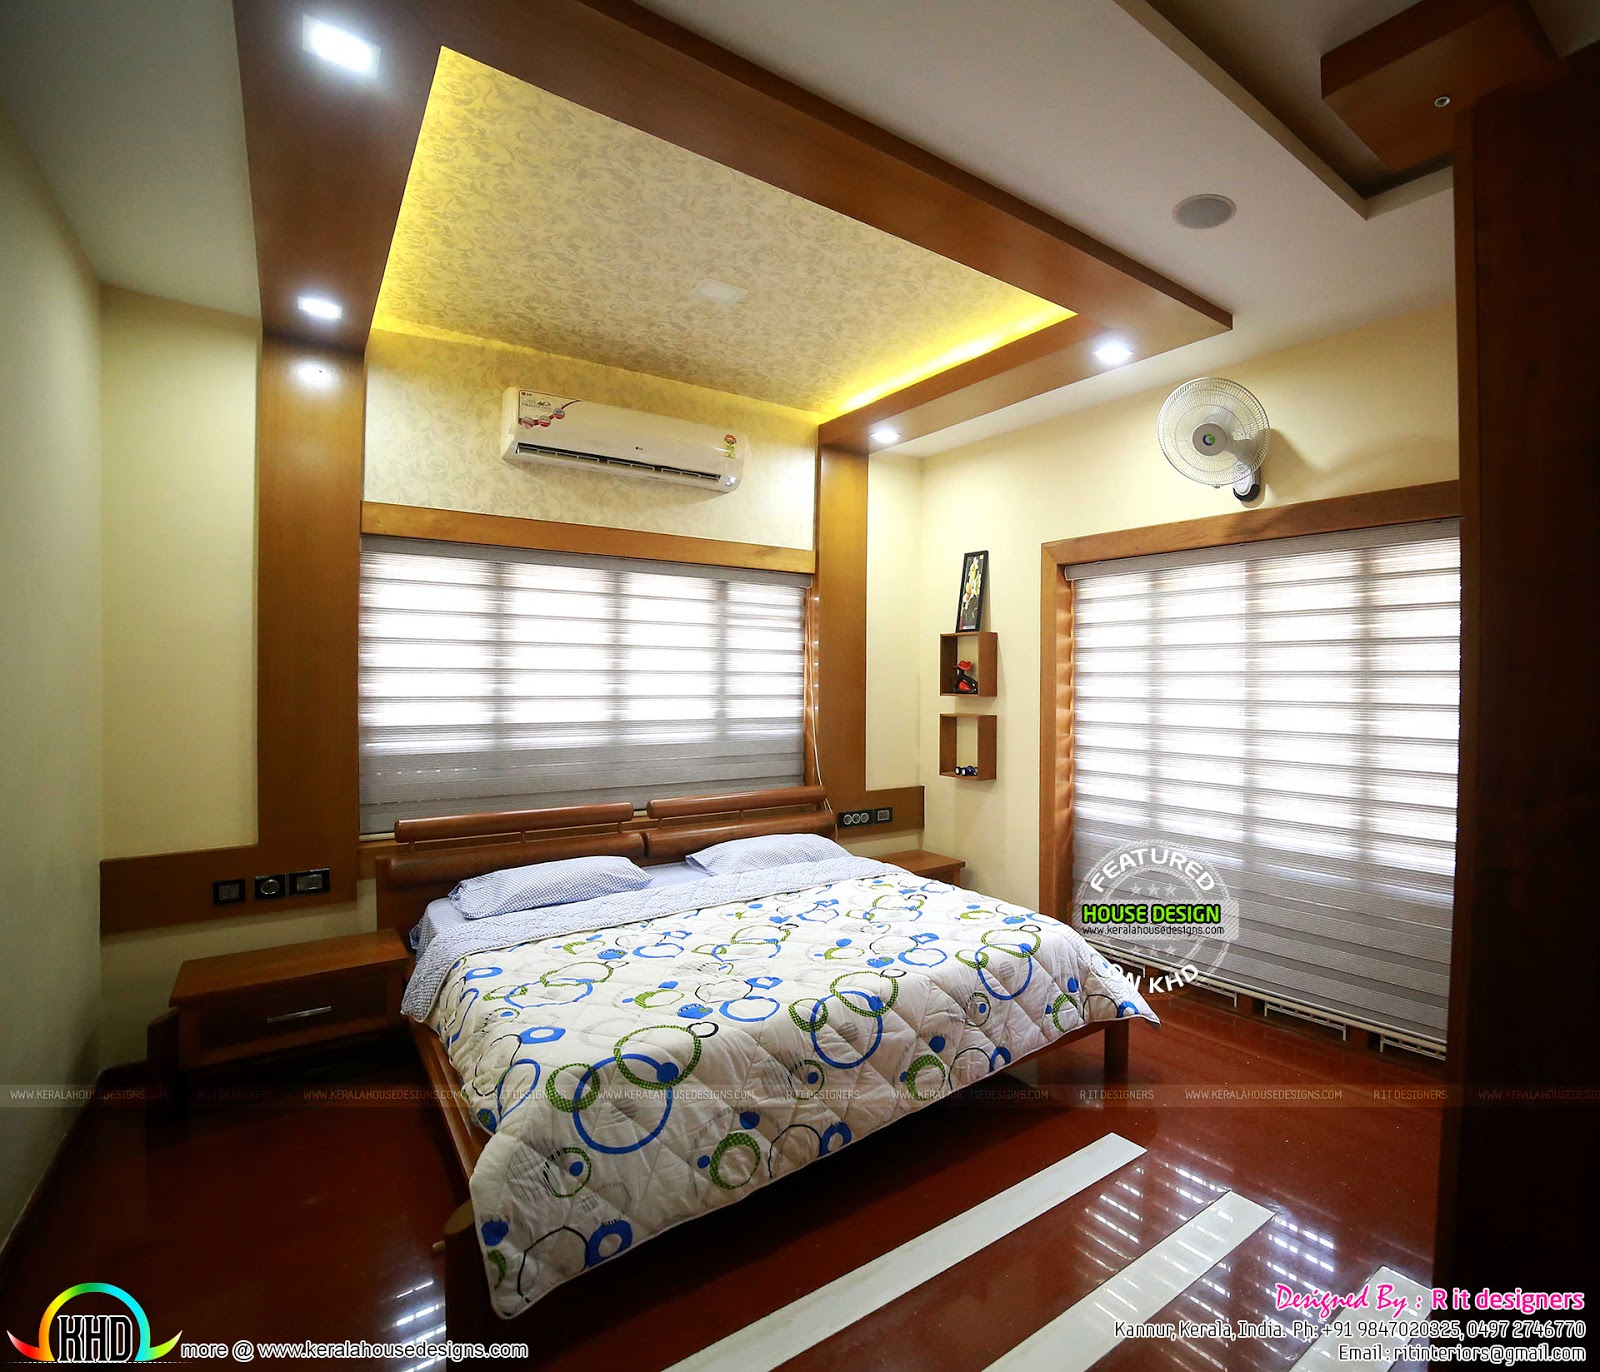 Bedroom Interior Kerala Style No Bed Bedroom Design Image Of Bedroom Colour Cool Boy Bedroom Ideas: Finished Home, Floor Plan And Interiors